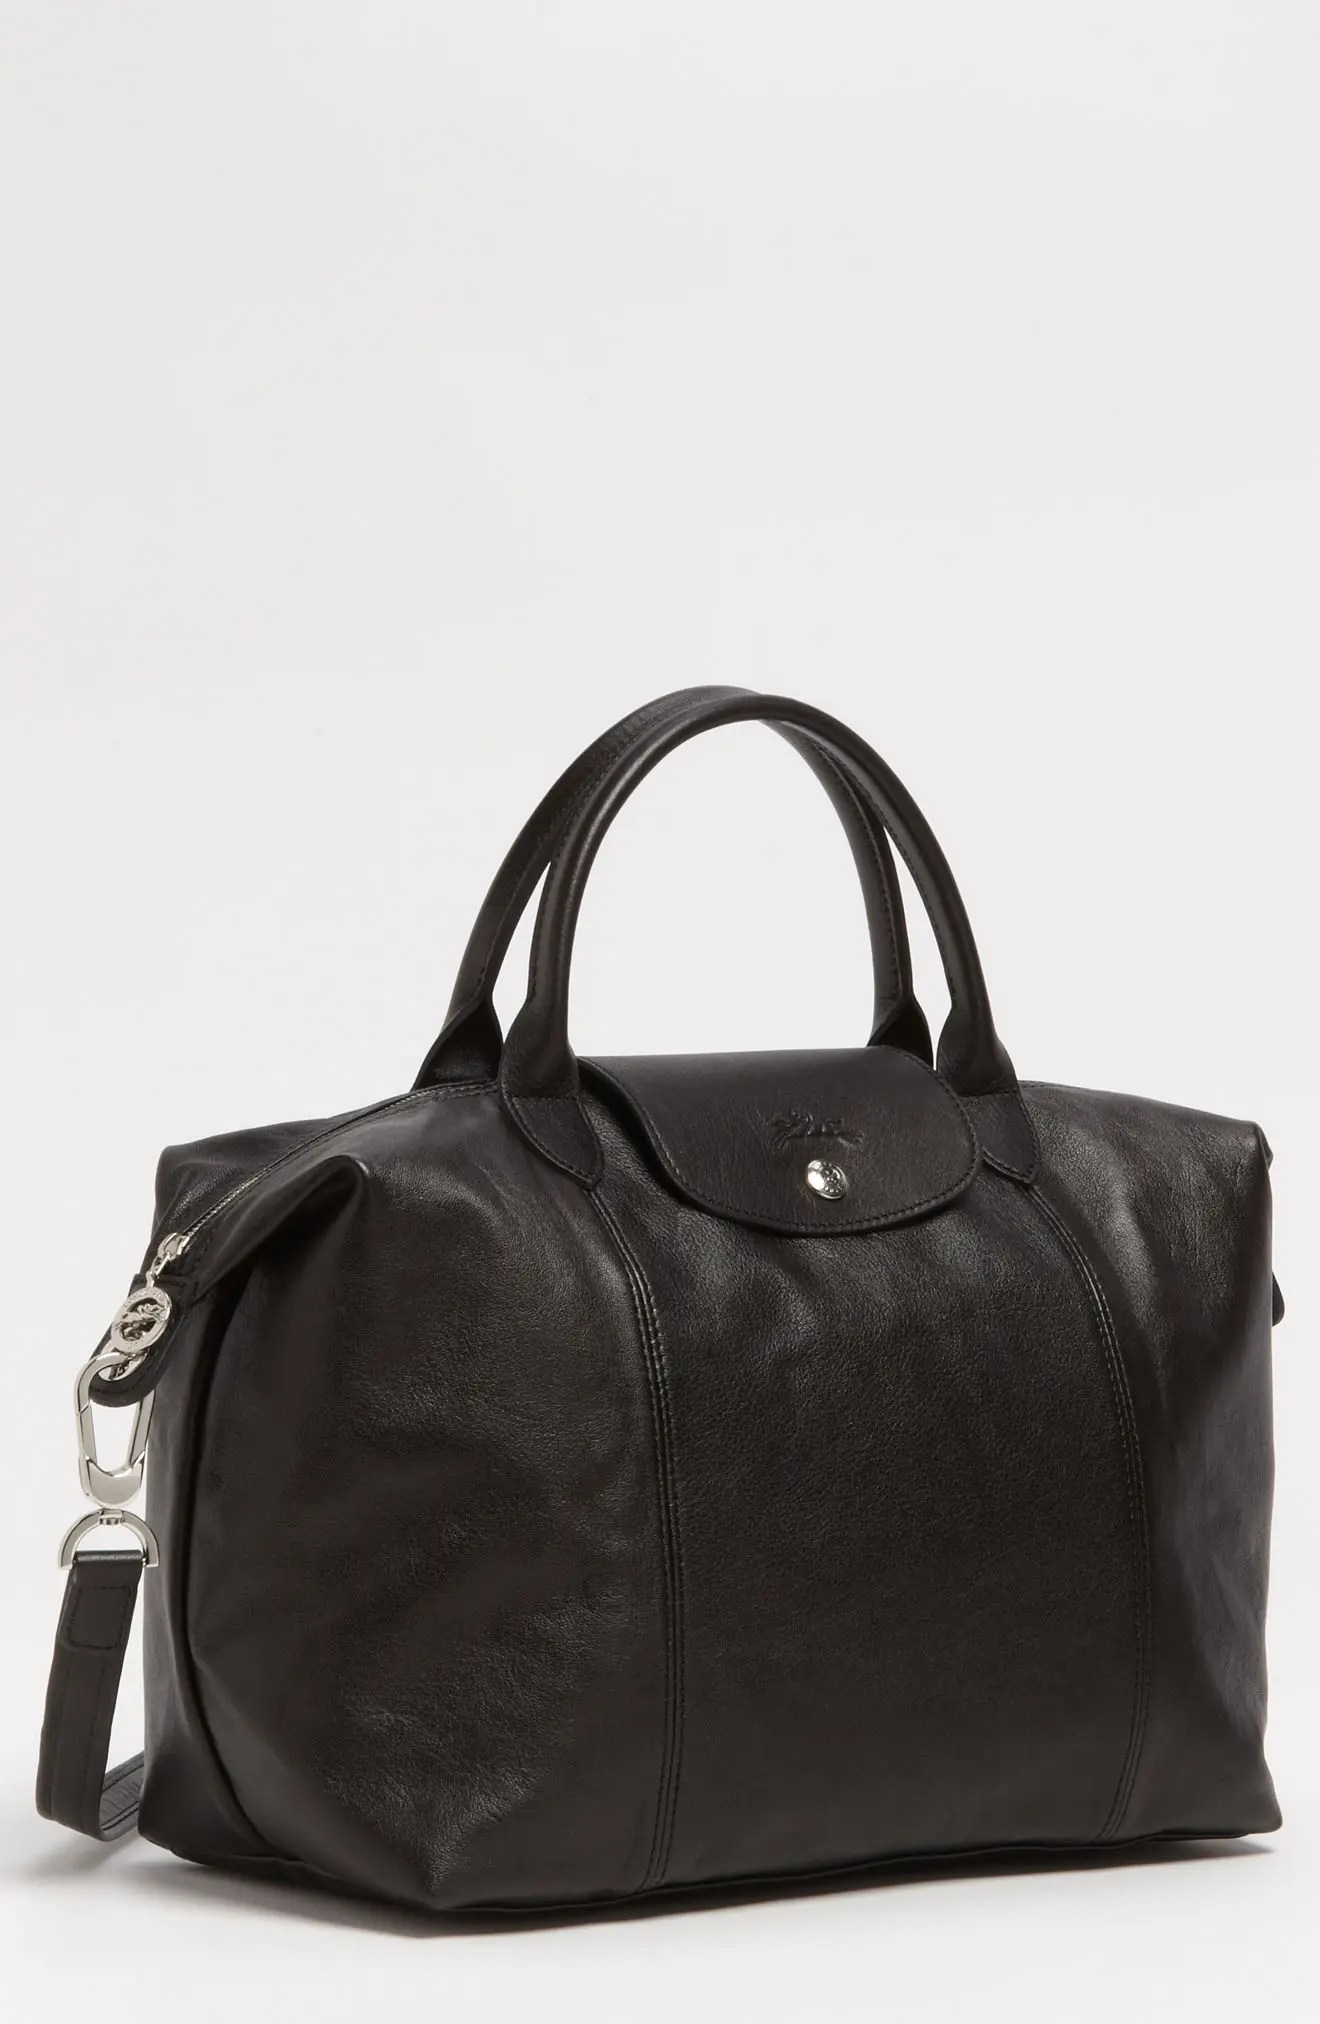 Leather Cuir Medium Le Pliage Cuir Leather Top Handle Tote